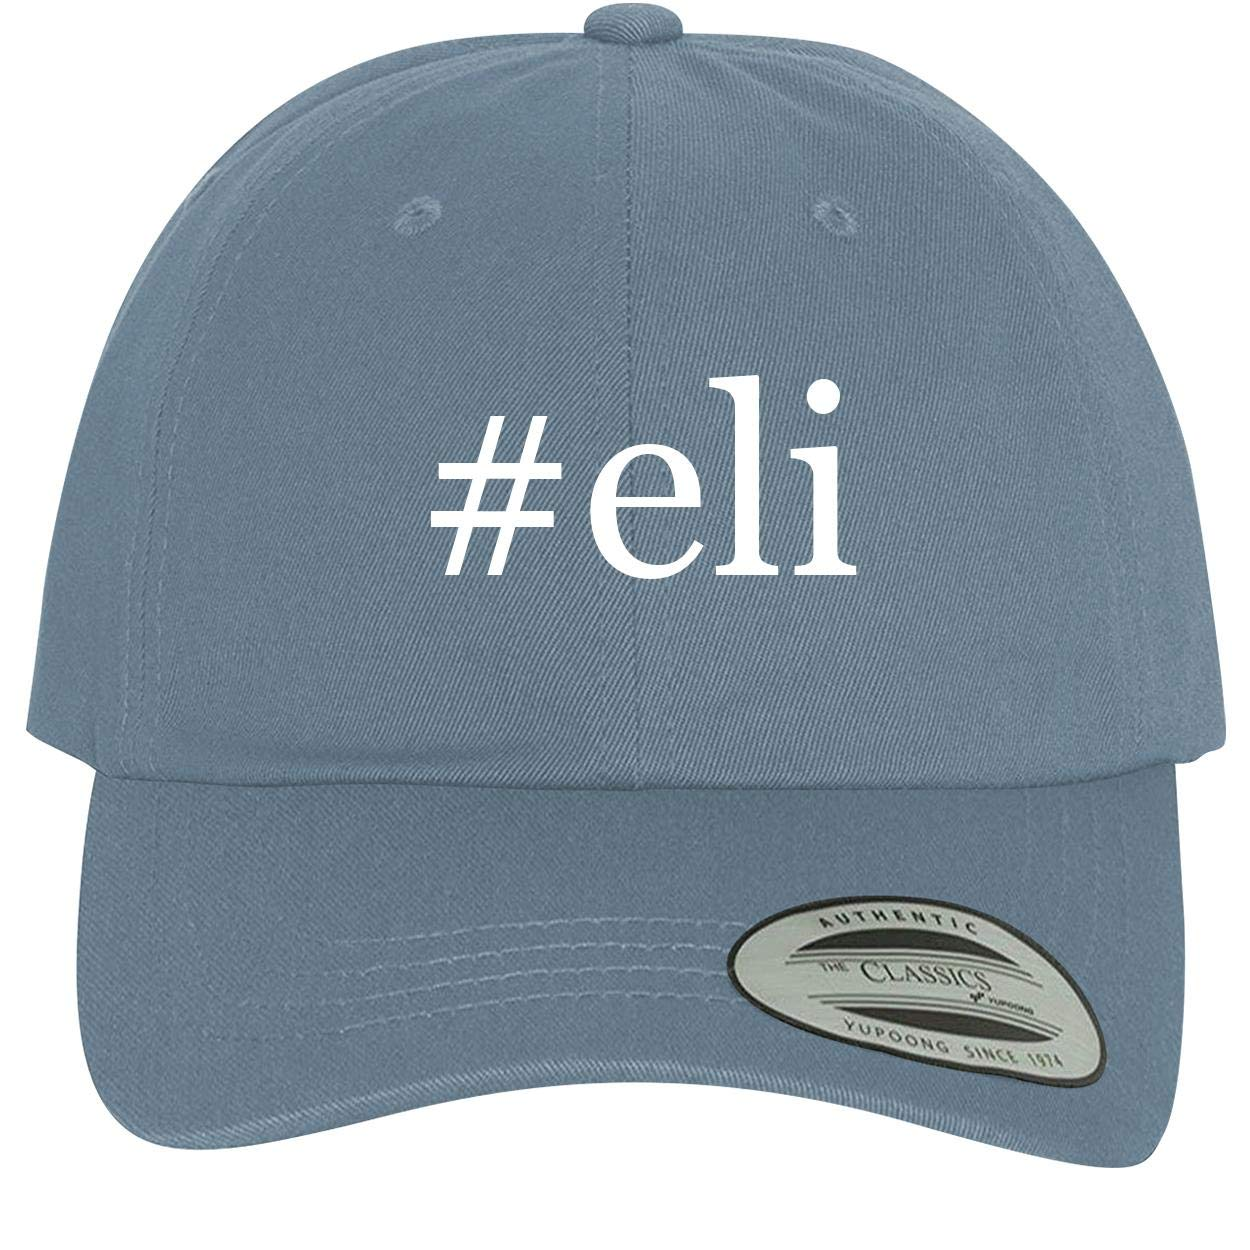 Comfortable Dad Hat Baseball Cap BH Cool Designs #eli